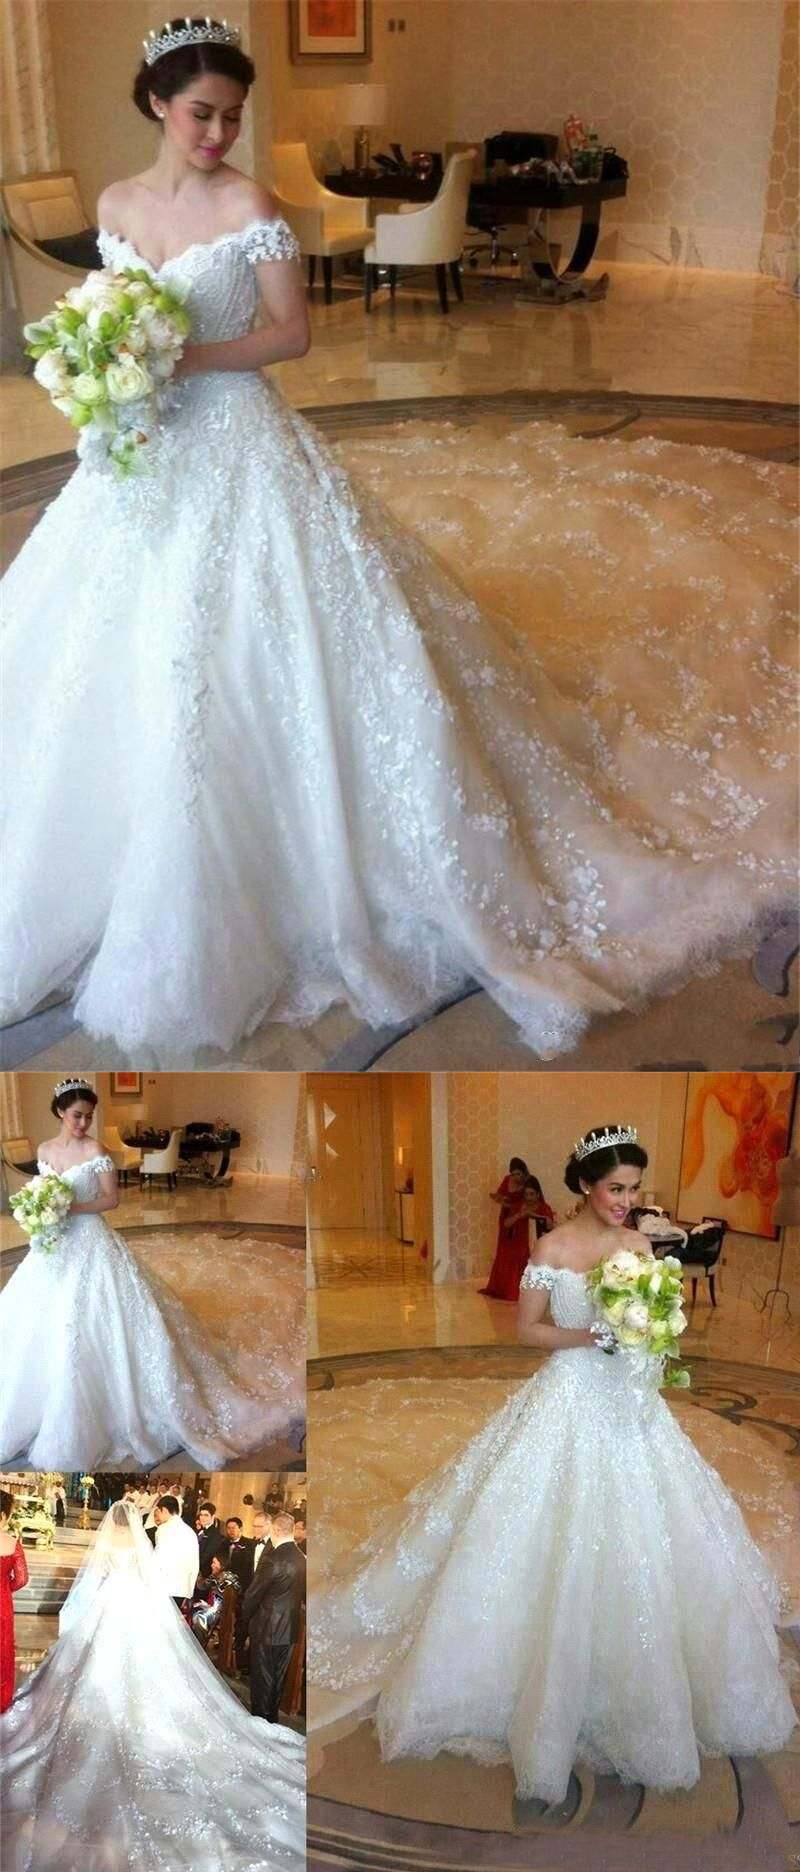 Luxurious offtheshoulder wedding dressbridal gown with lace